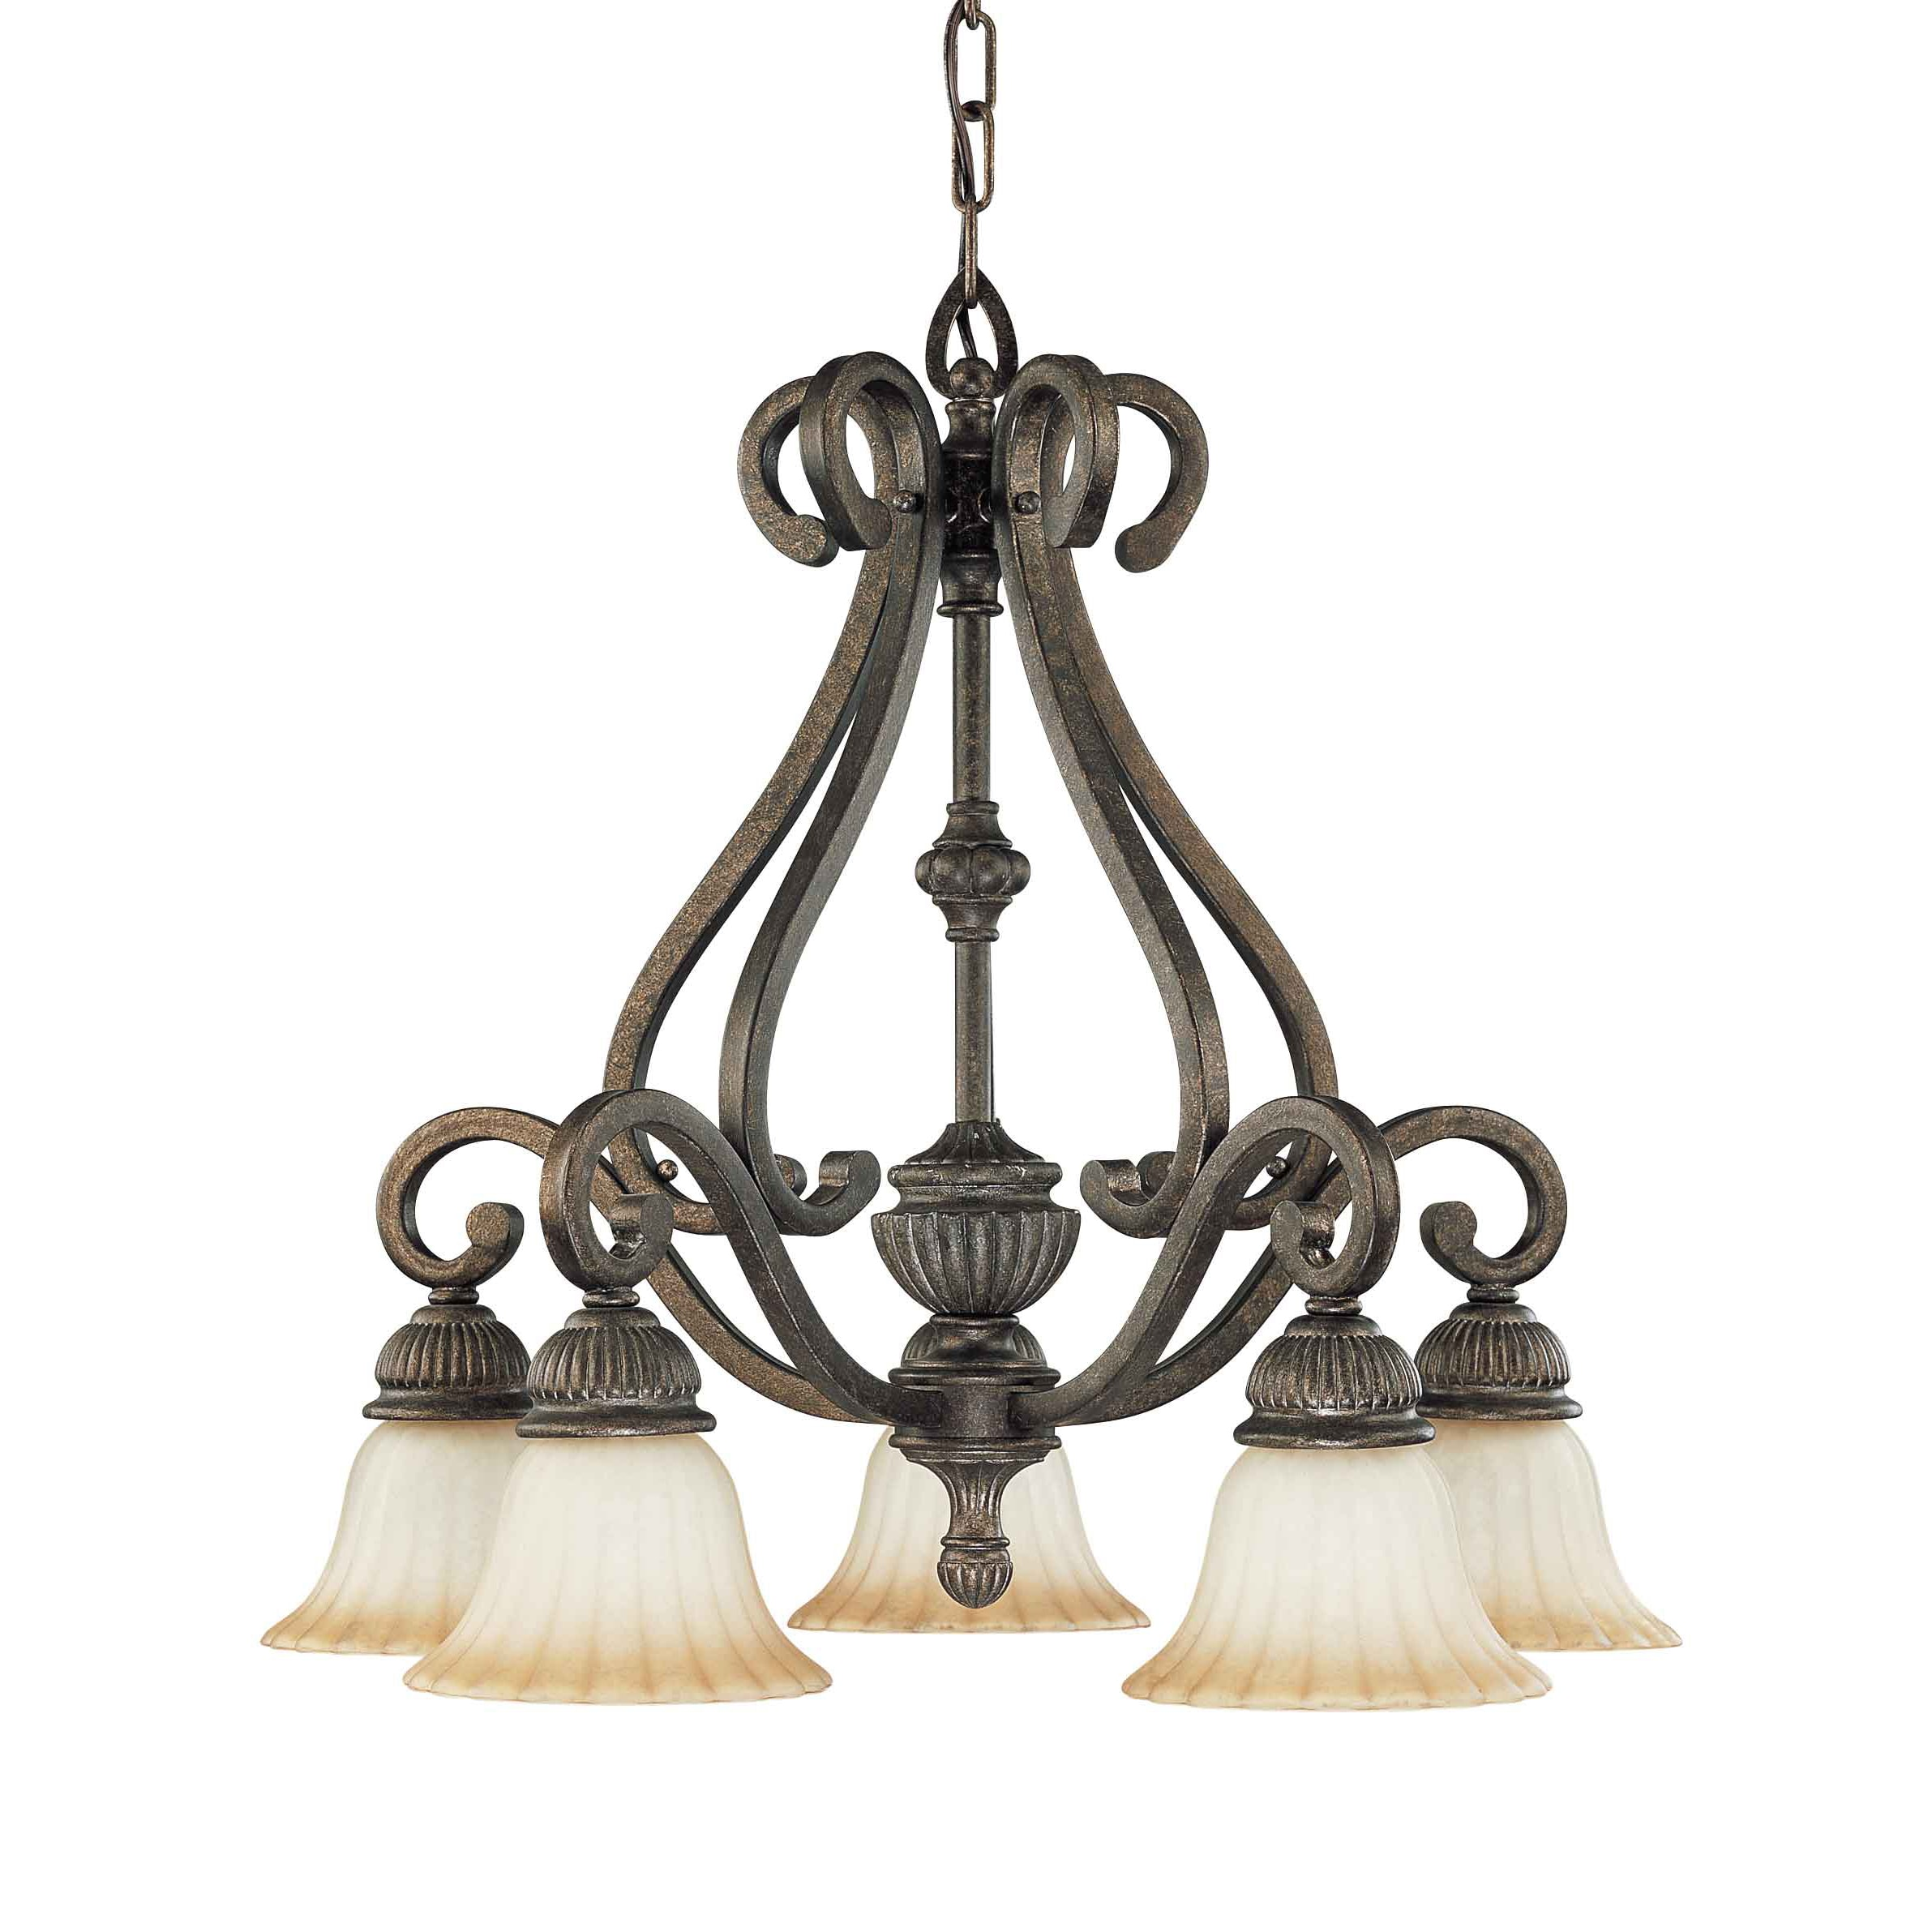 Fortunata 5 Light Lisbon Bronze With Corvo Amber Wash Glass Arm Down Chandelier - Thumbnail 0